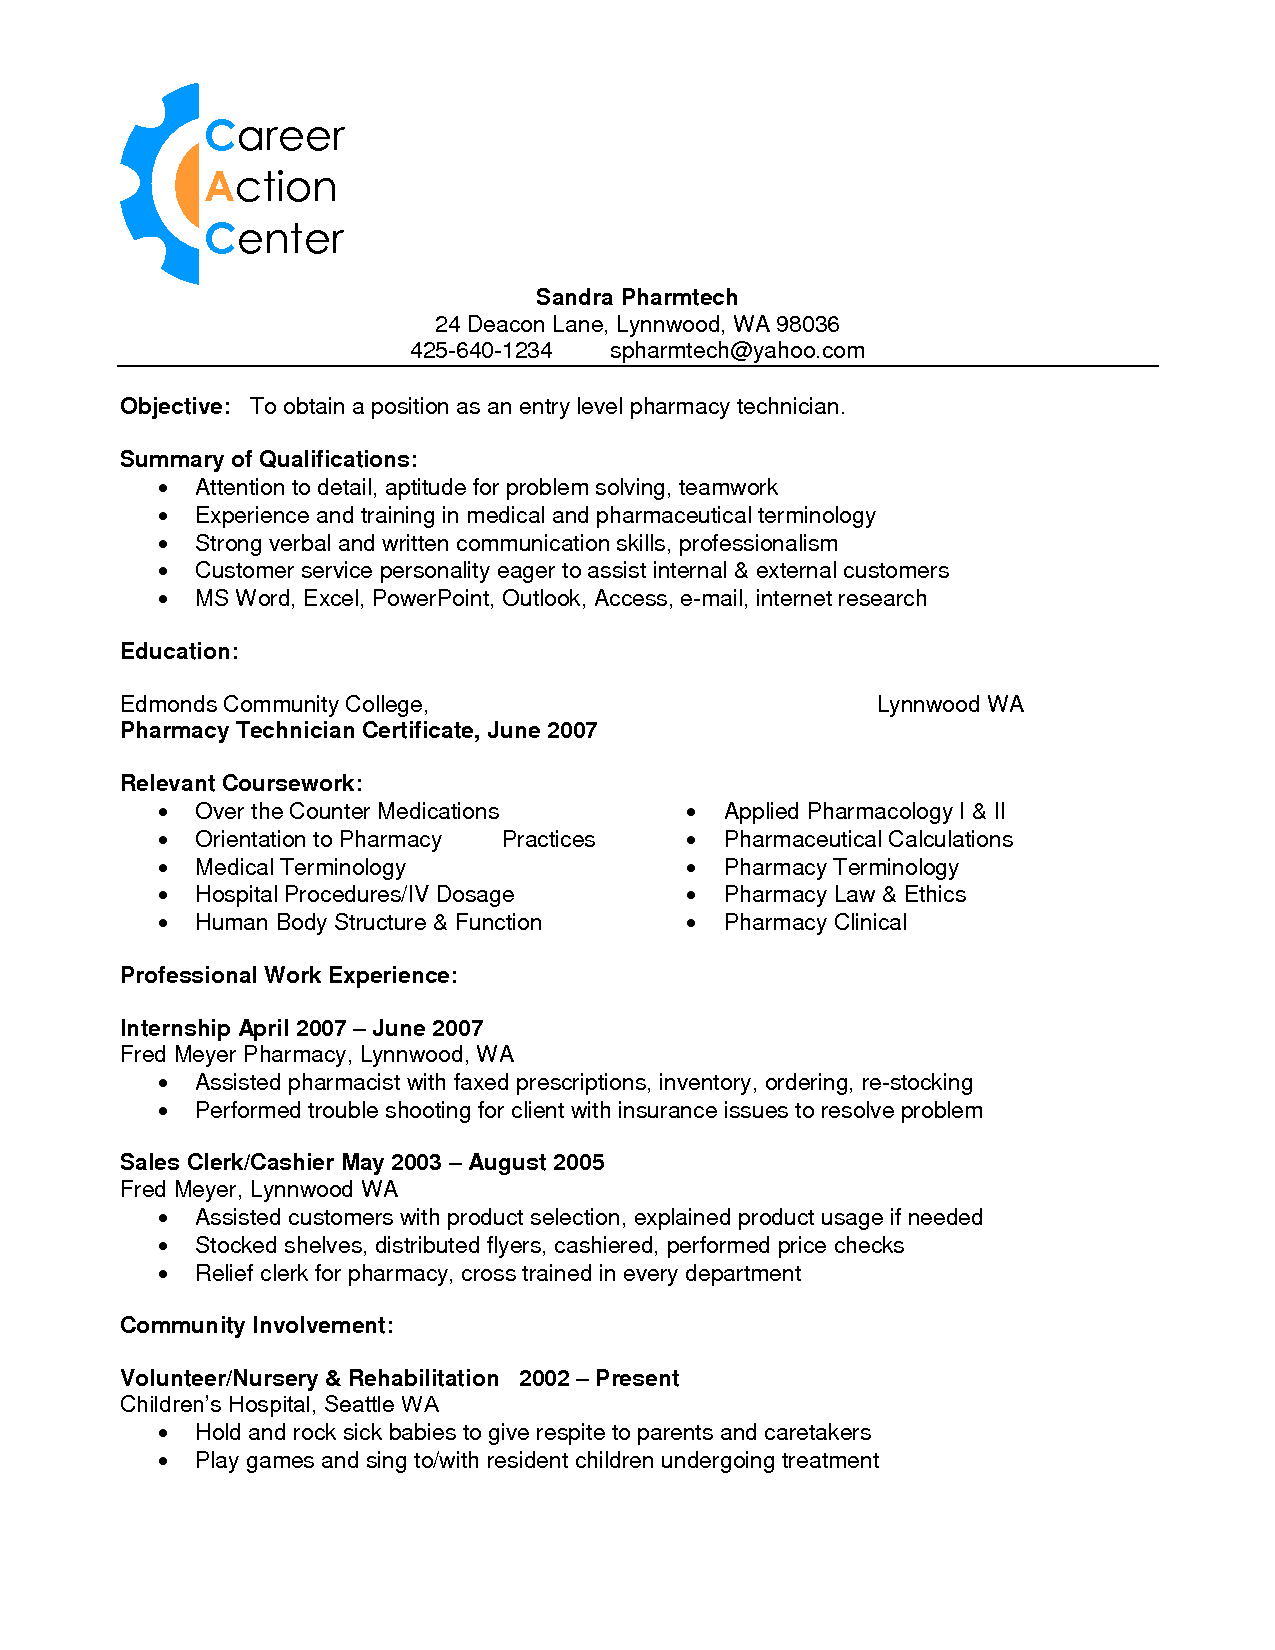 resume Bank Teller Entry Level Resume sample resume for bank teller at entry level httpwww resumecareer